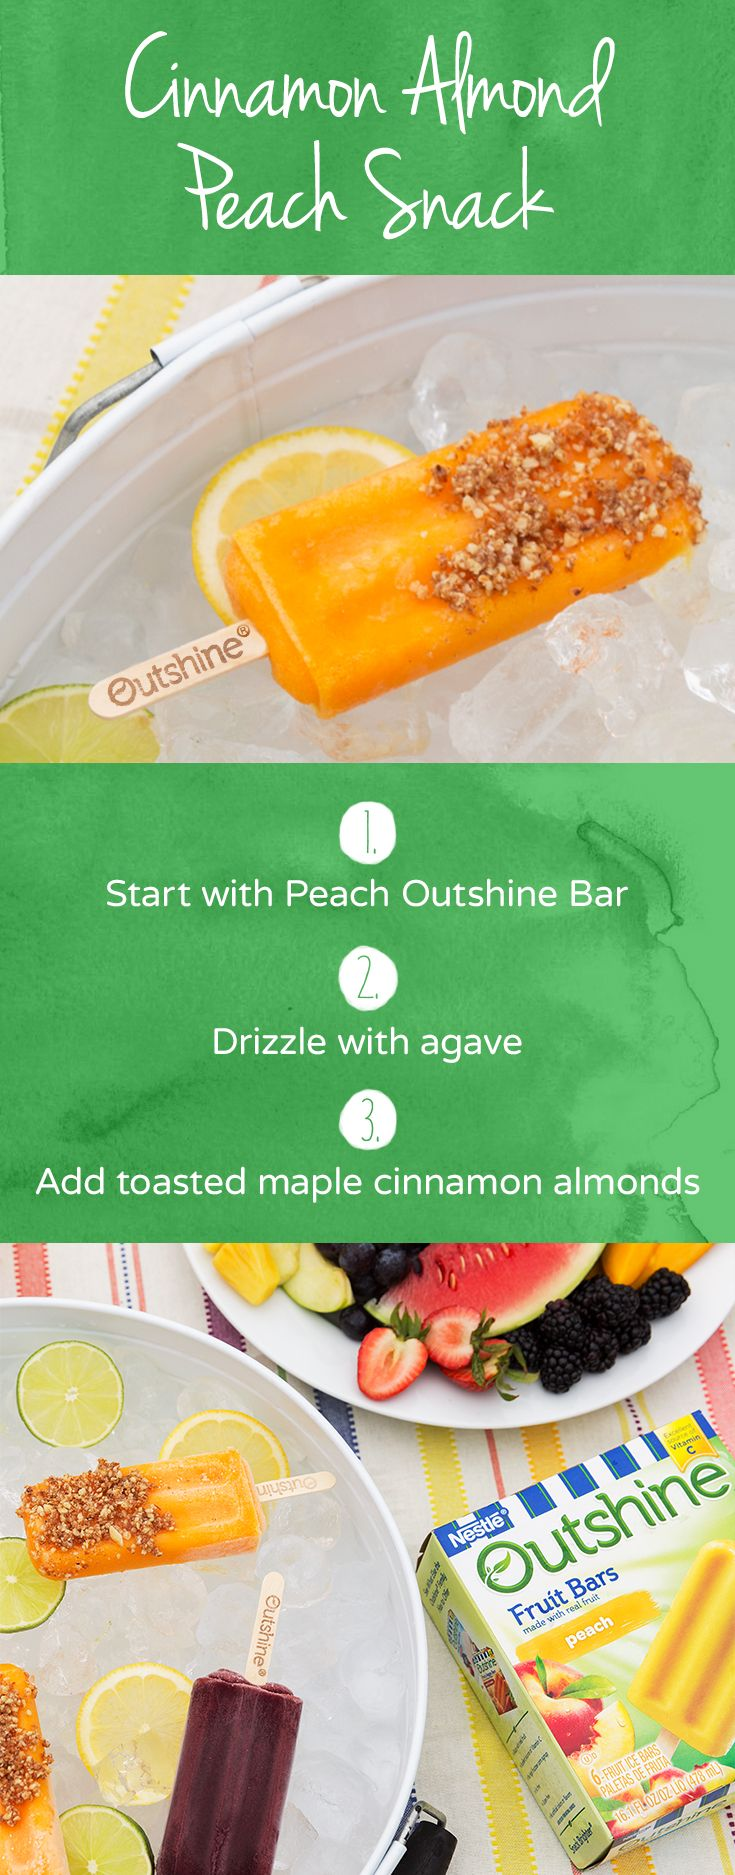 Get your hands on this peachy snack hack ideal for any summer party! Start with Outshine Peach Bars and drizzle with agave. Crush lightly toasted maple cinnamon almonds into small pieces and sprinkle them on top of your peach bars. Plate over ice and add some sliced lemons and limes to keep everything chilled and looking great!